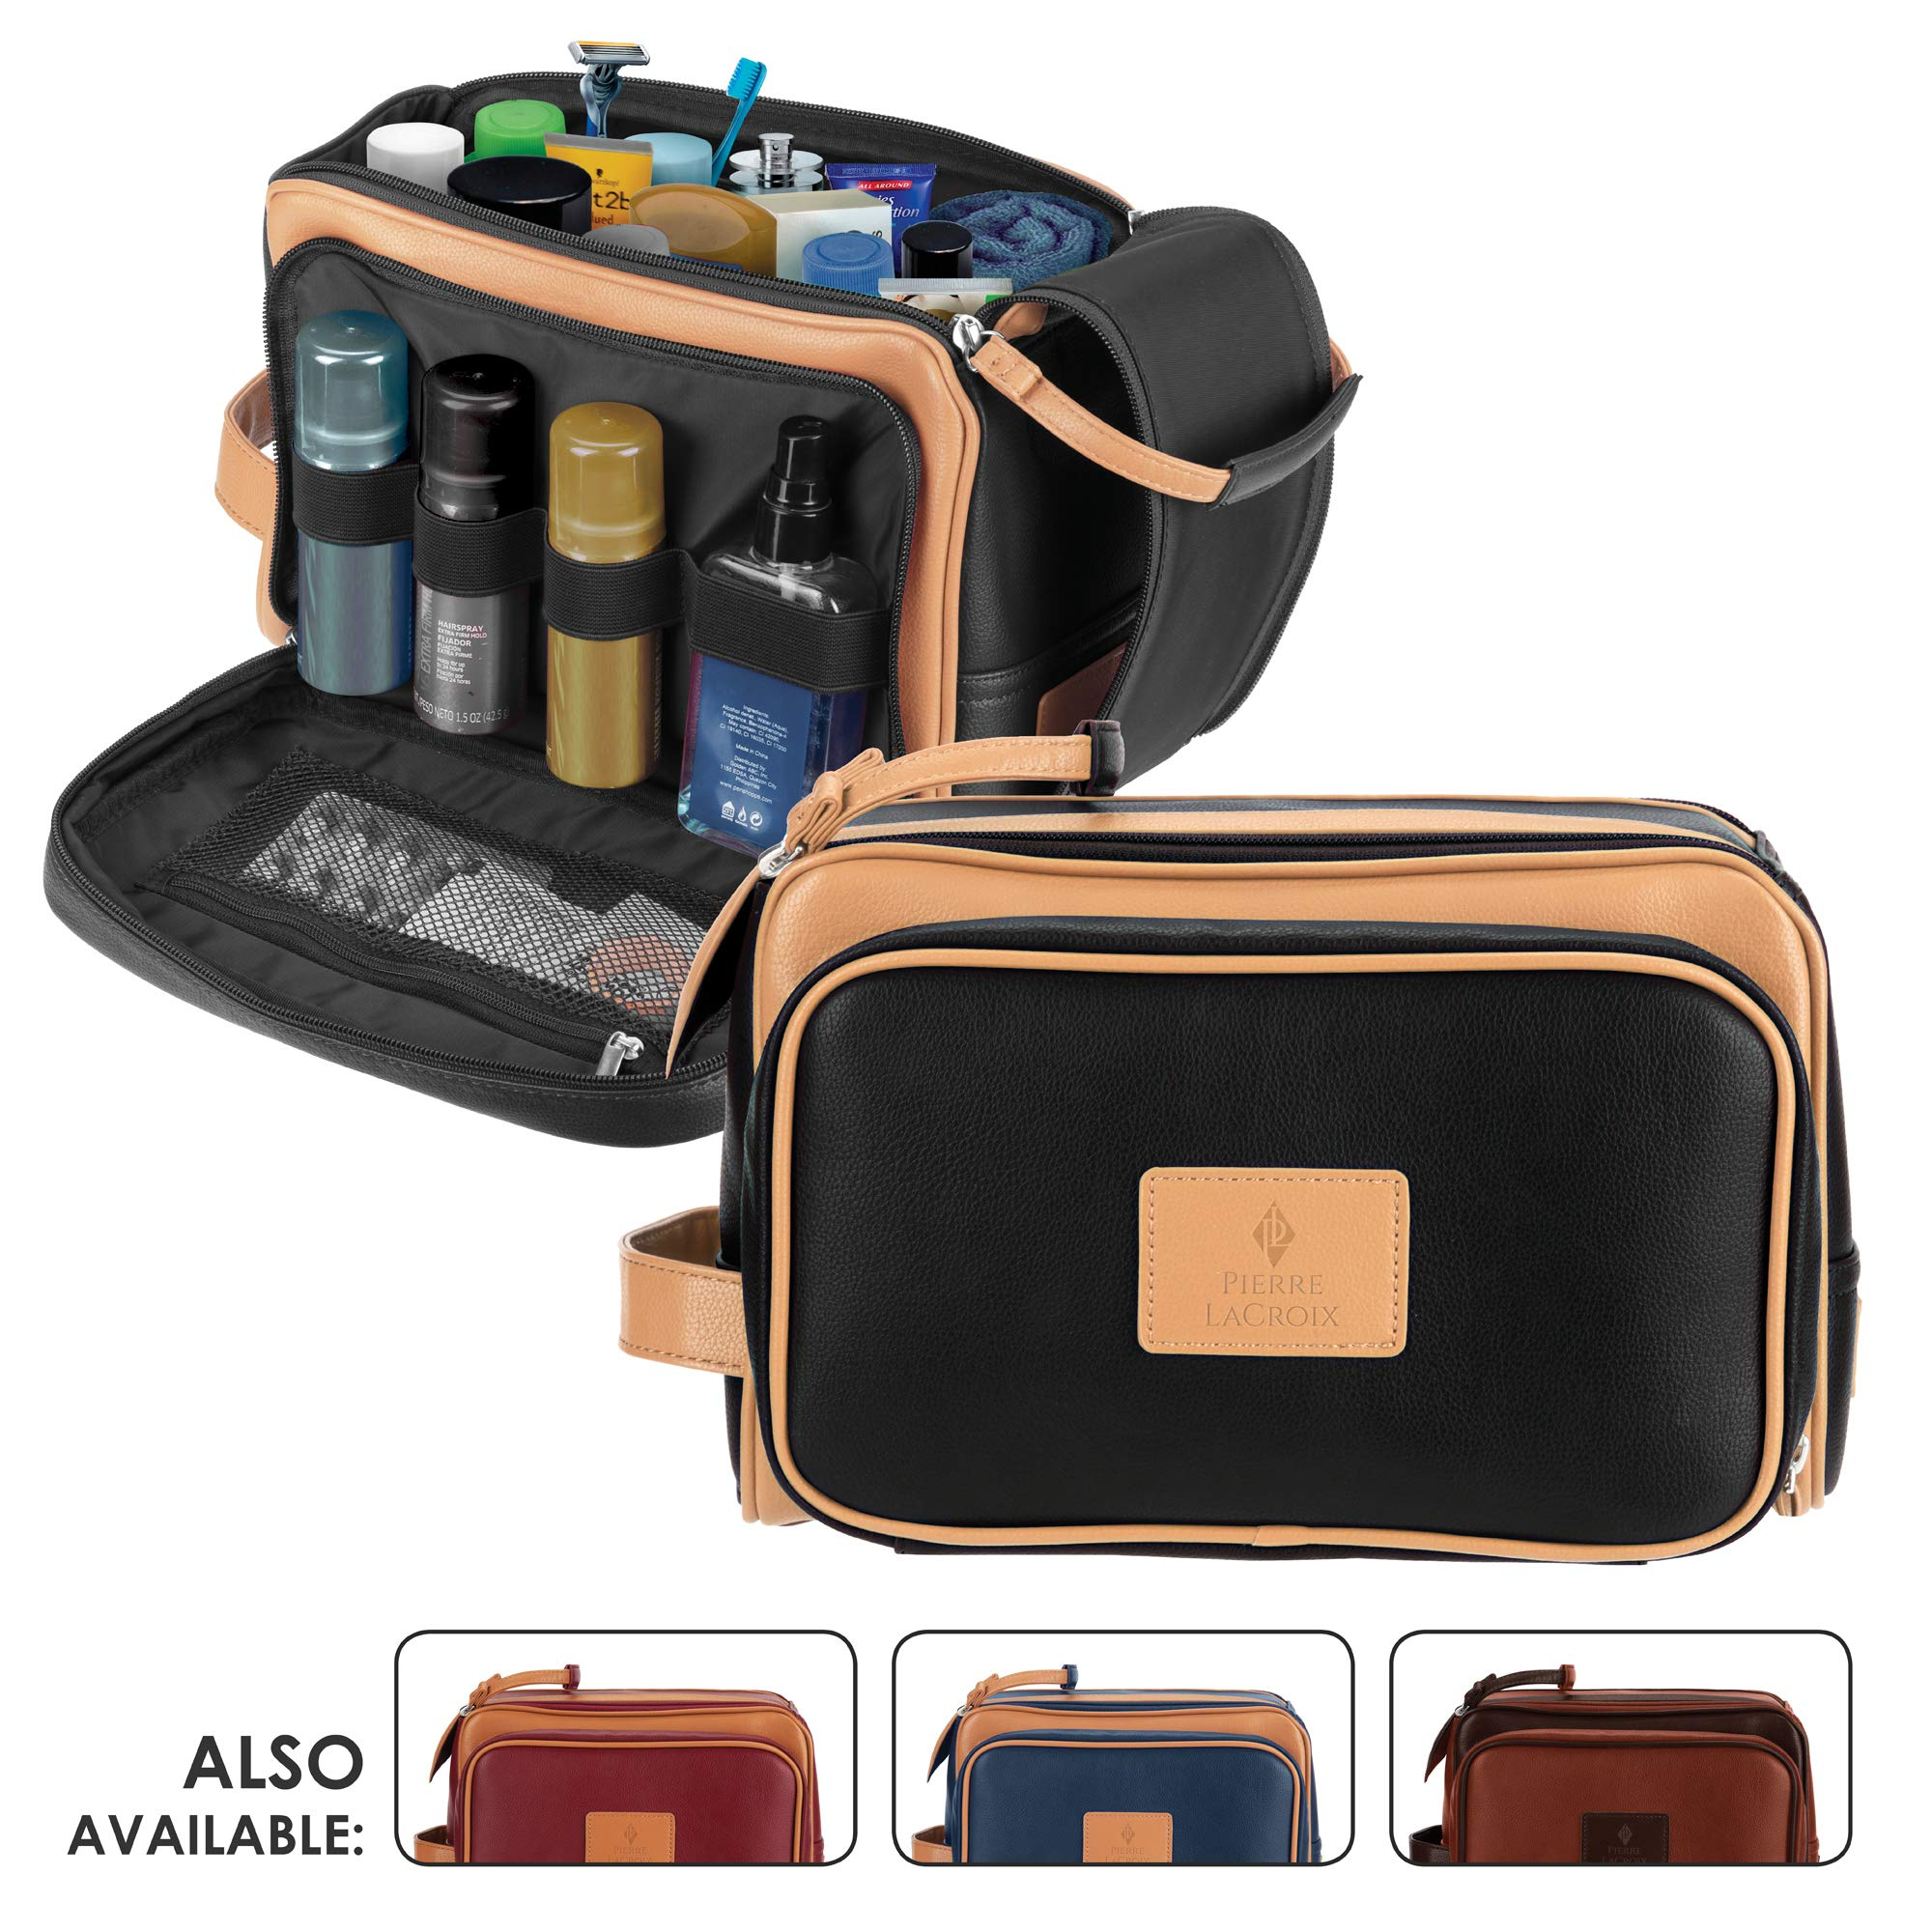 Cruelty-Free Leather Travel Toiletry Bag/Dopp Kit by Pierre LaCroix | Hand-Stitched Using Premium PU Leather and YKK Zippers | Leak Proof | (11''x7''x7'') (Centurion Black)